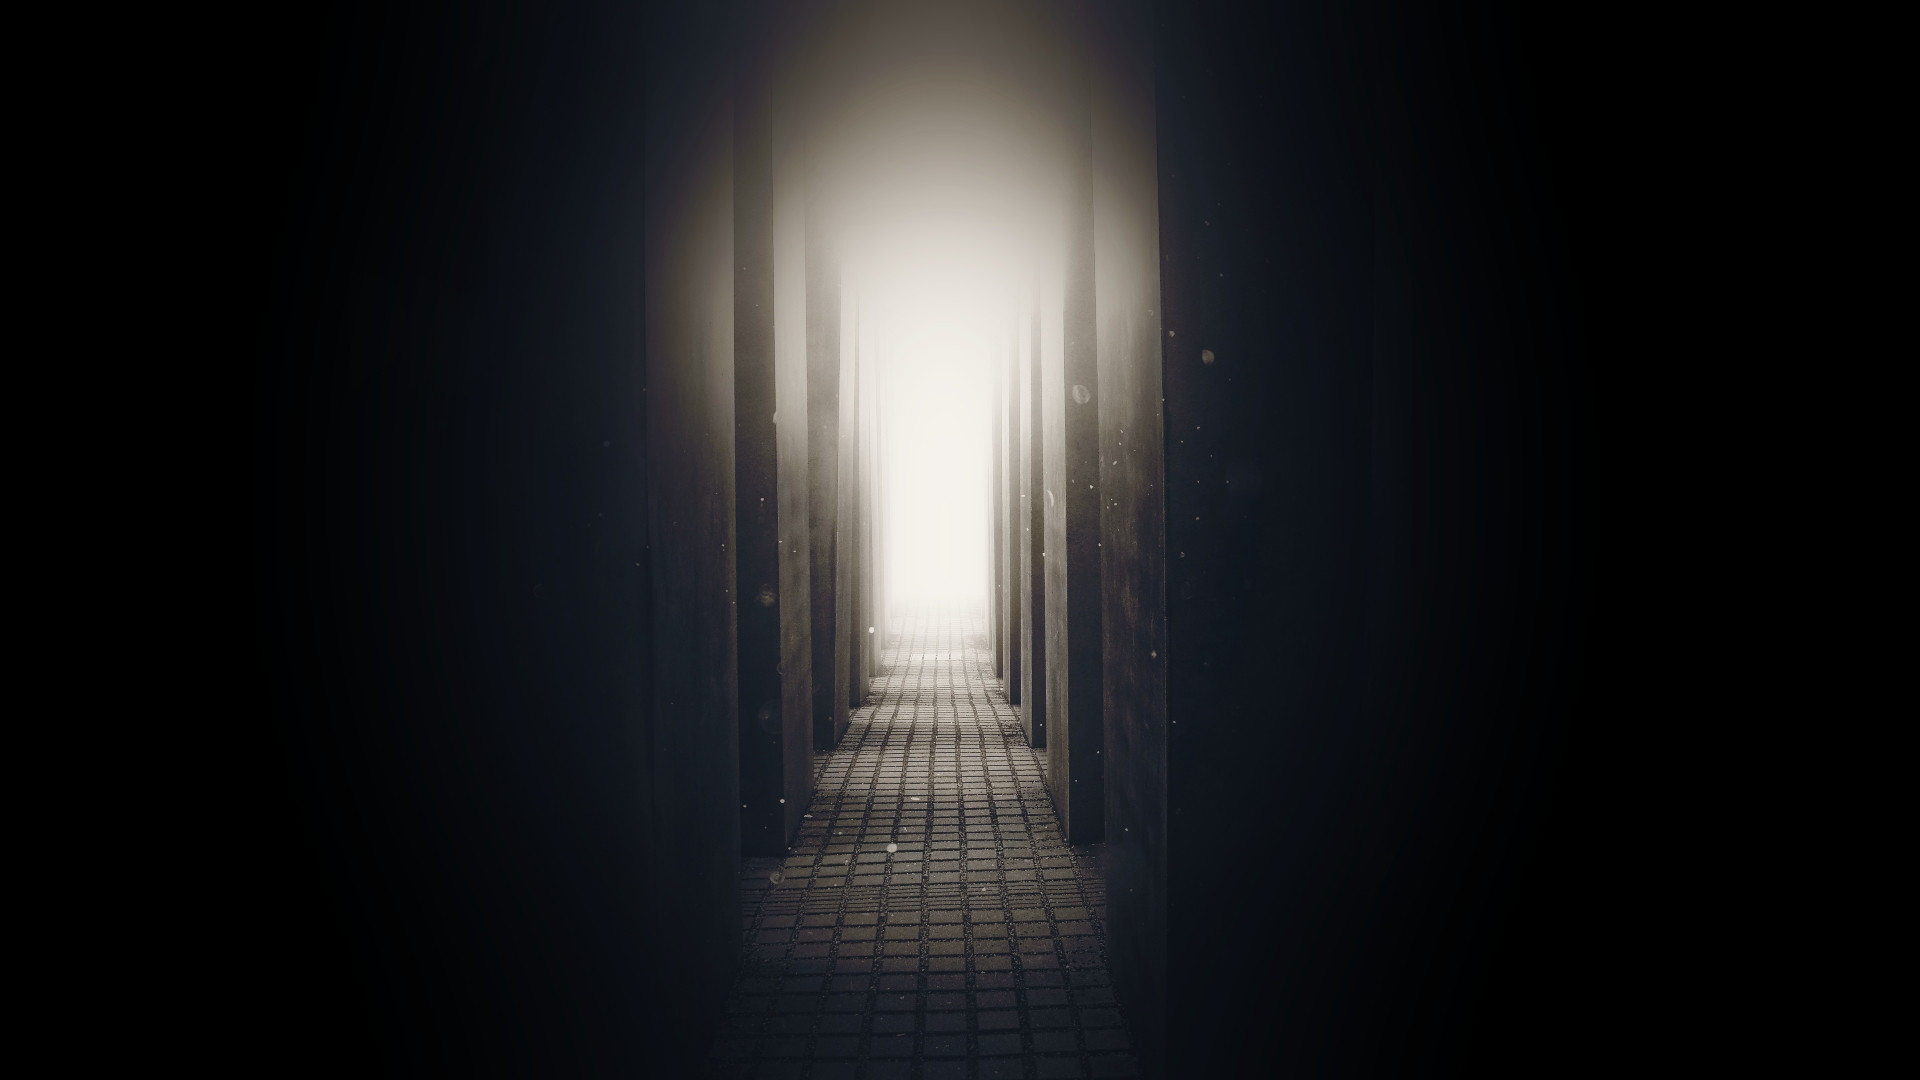 Dark Hallway By Dulje On DeviantArt